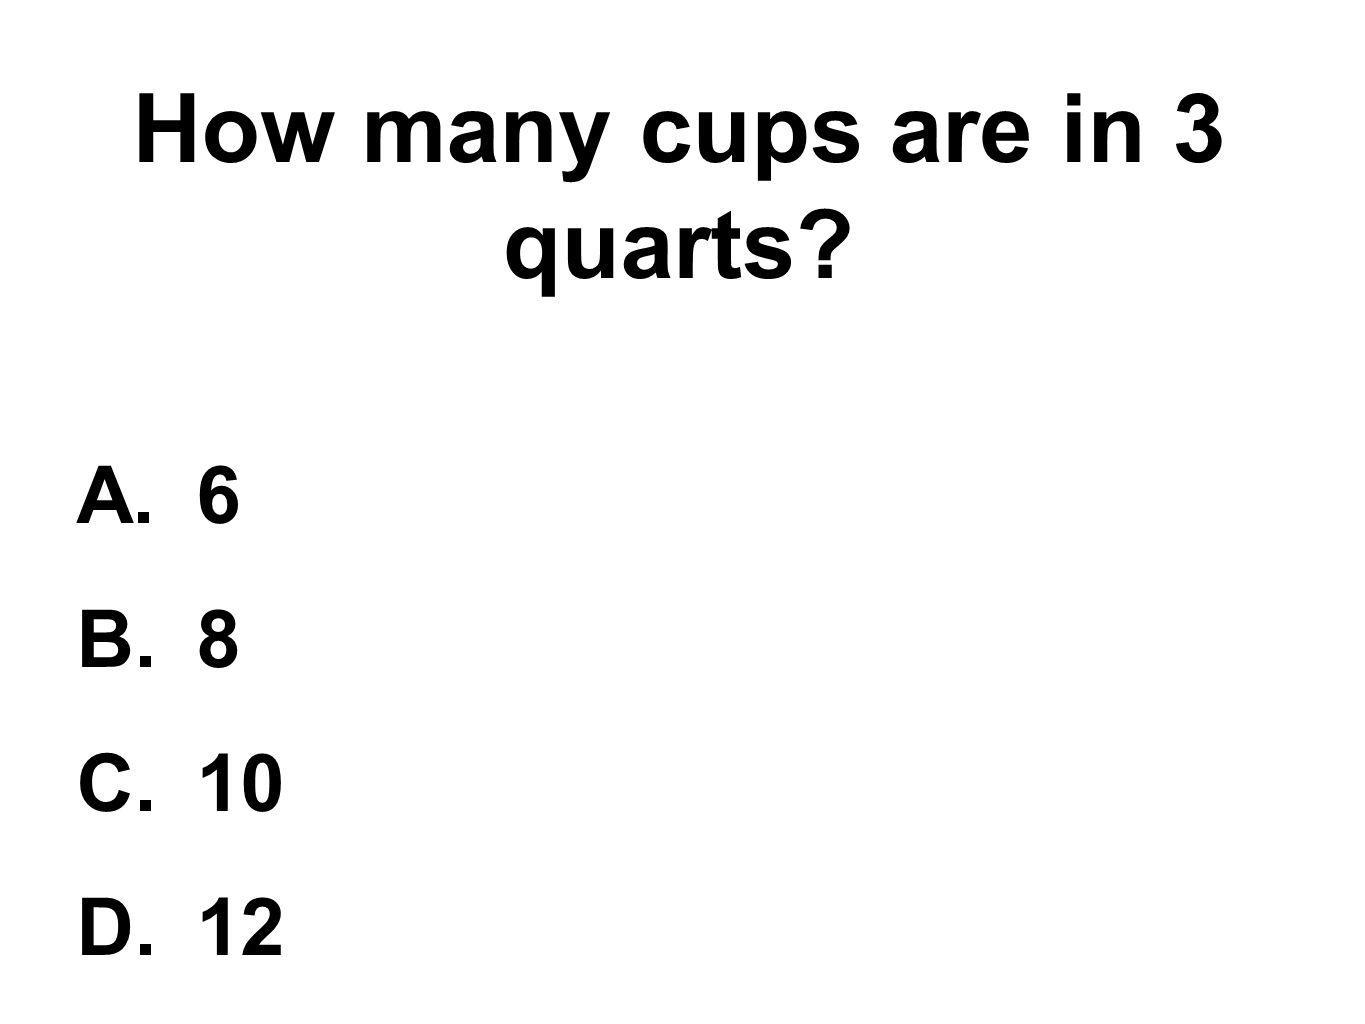 How many cups are in 3 quarts